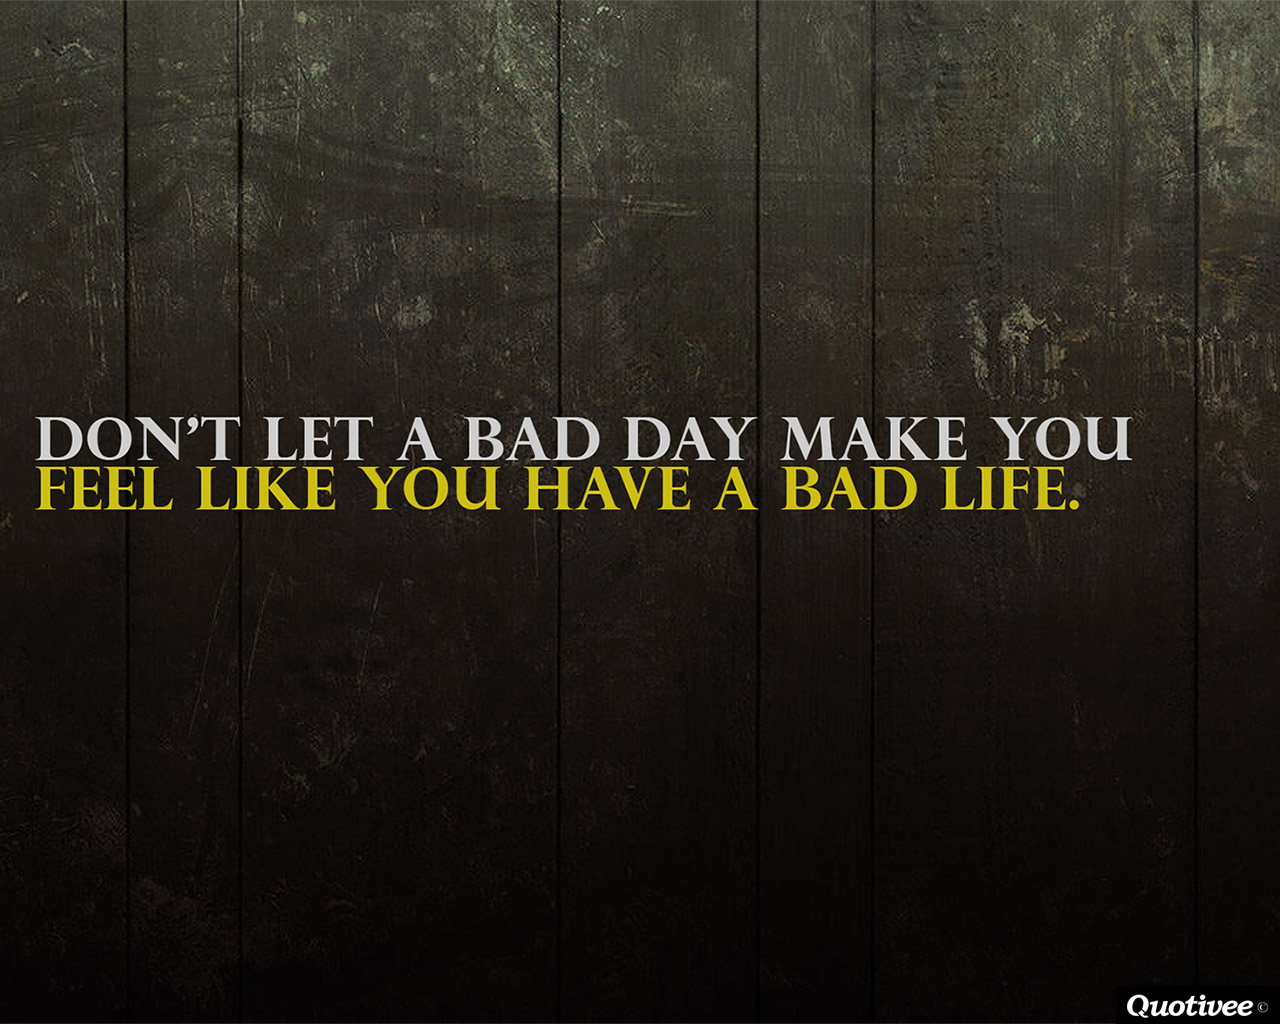 Uplifting Quotes About Life A Bad Day  Inspirational Quotes  Quotivee